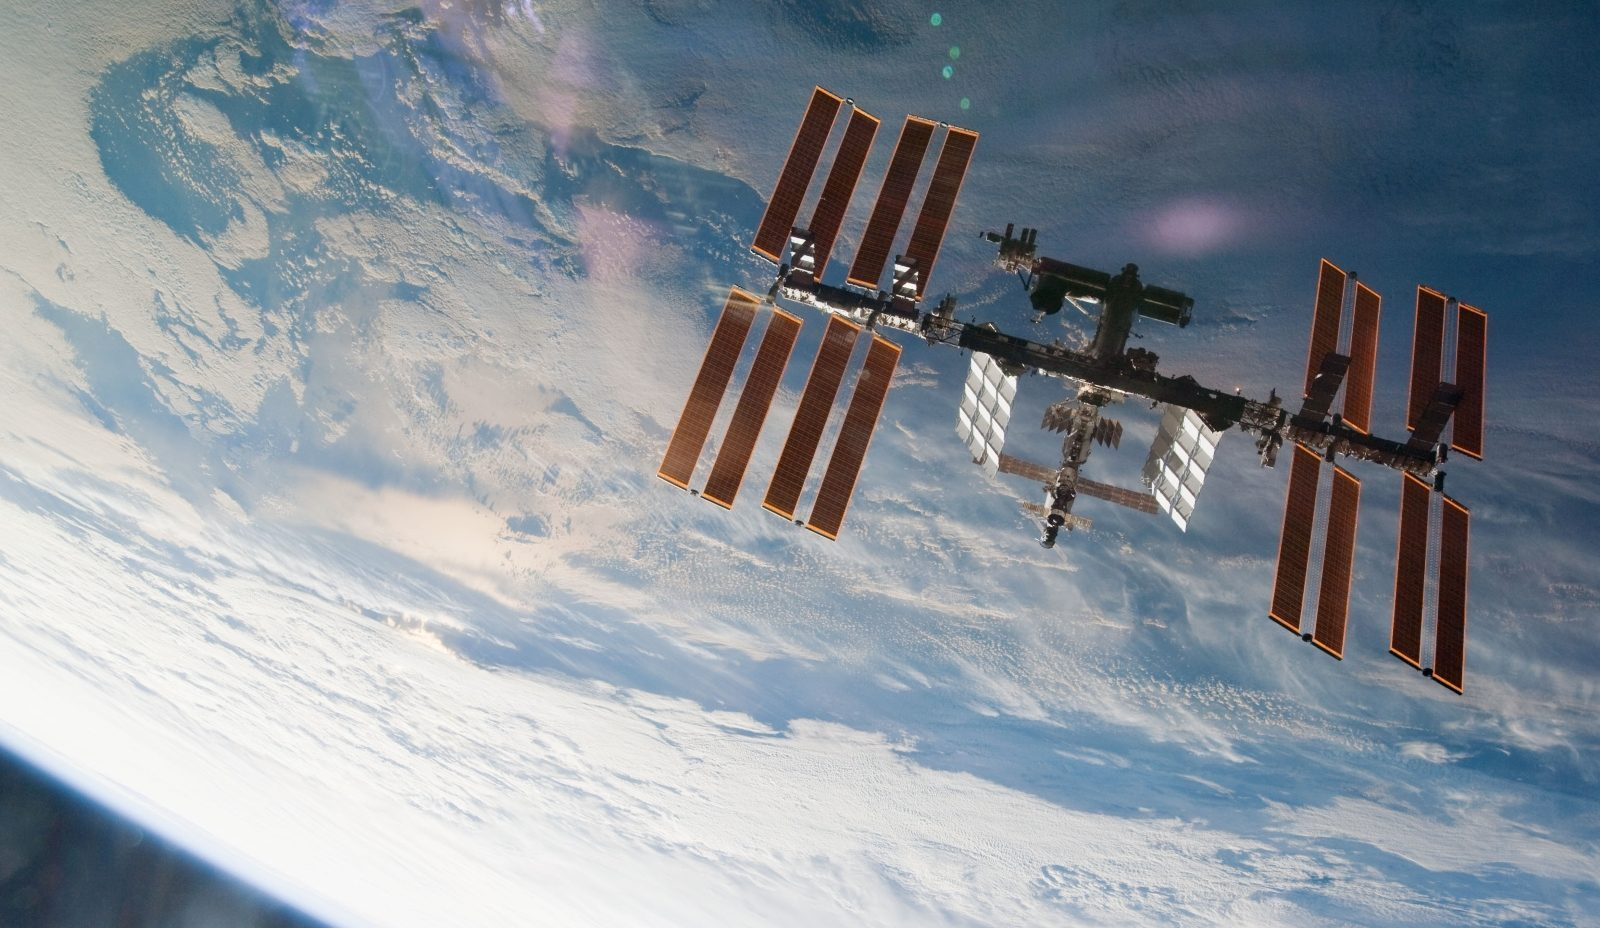 The International Space Station as seen by STS-130 crew in 2010. Photo Credit: NASA